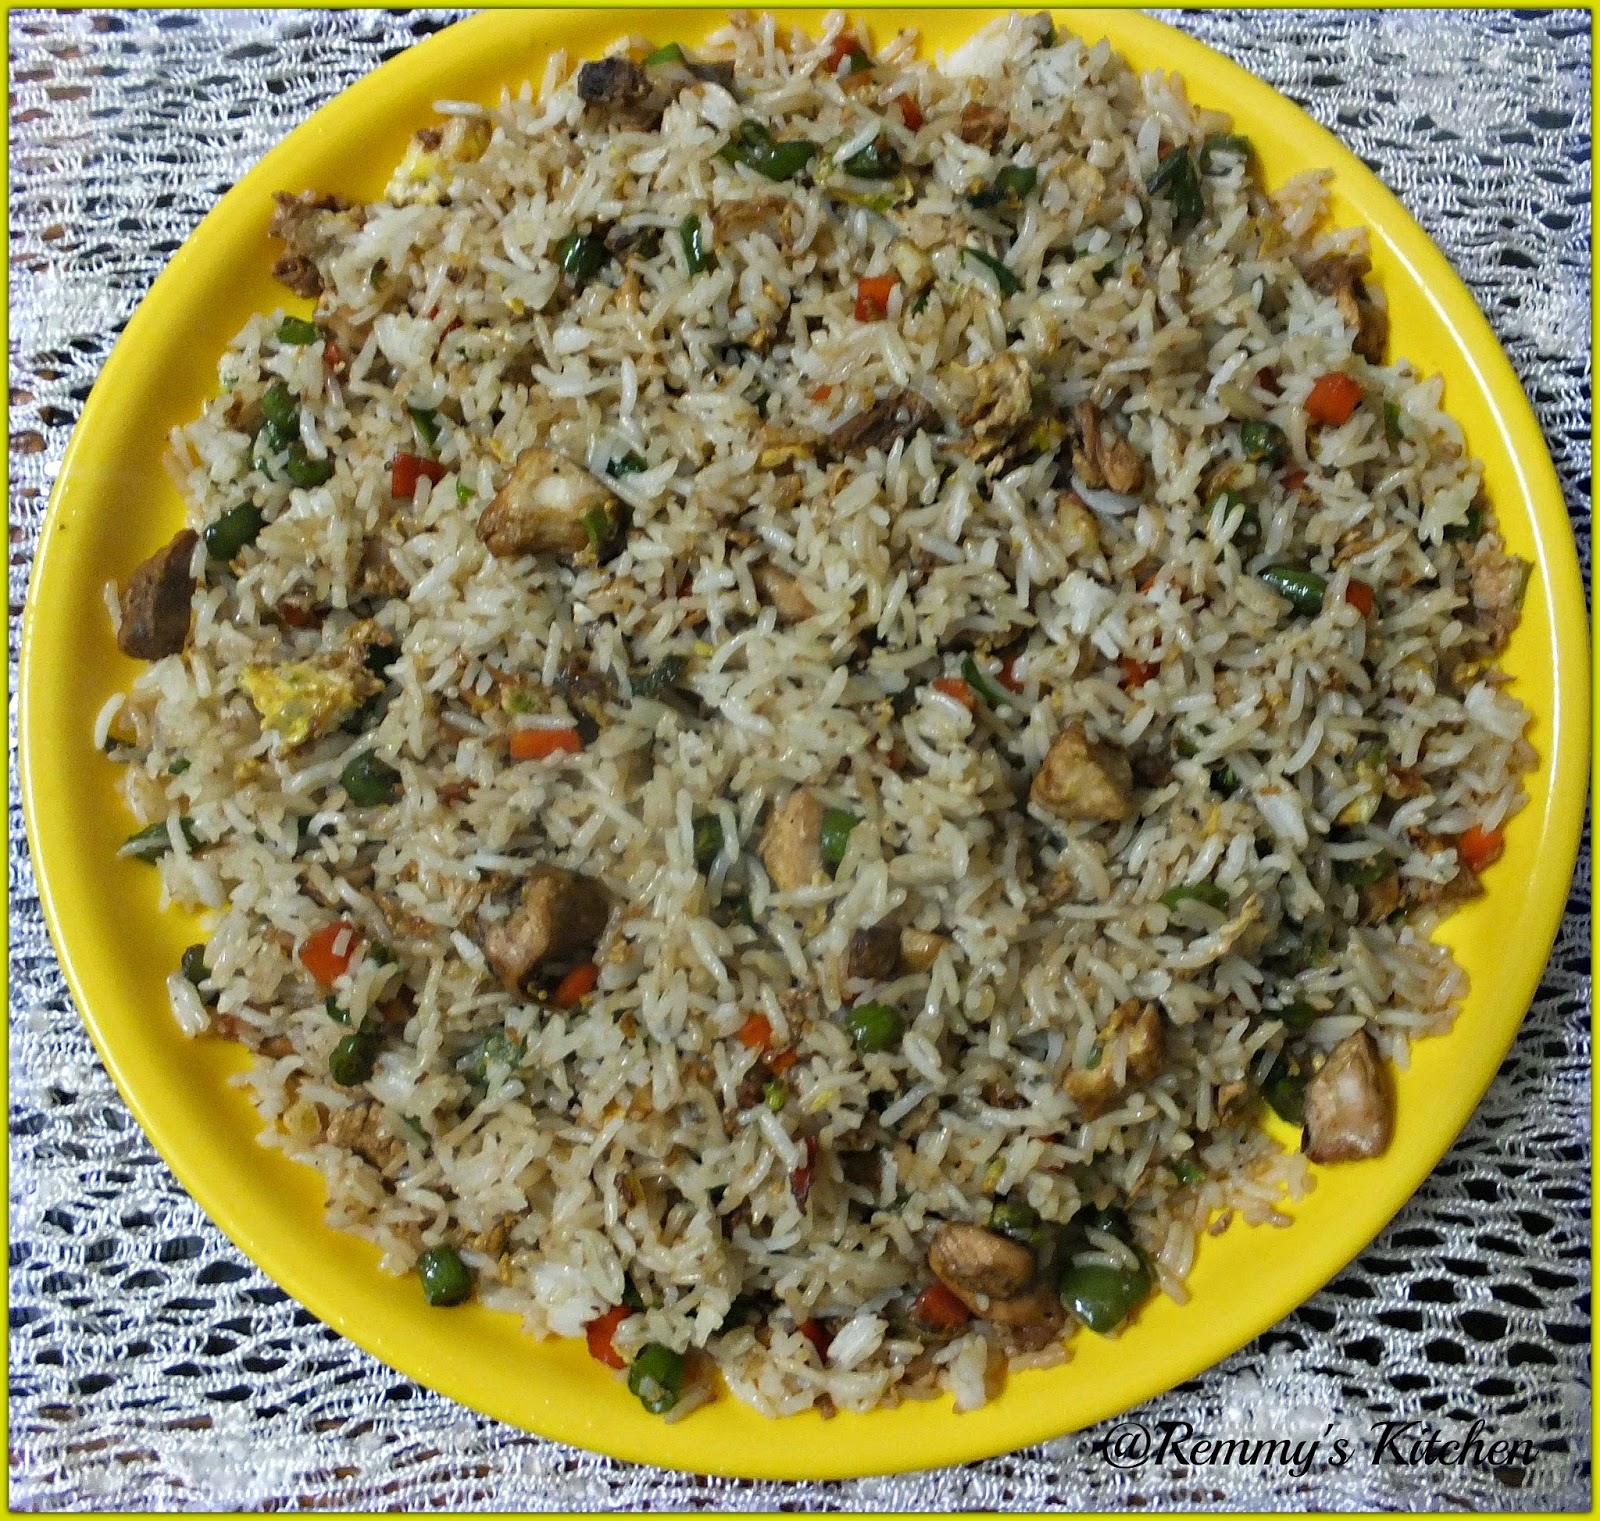 Remmys kitchen chicken fried rice fast food style monday 22 december 2014 ccuart Gallery